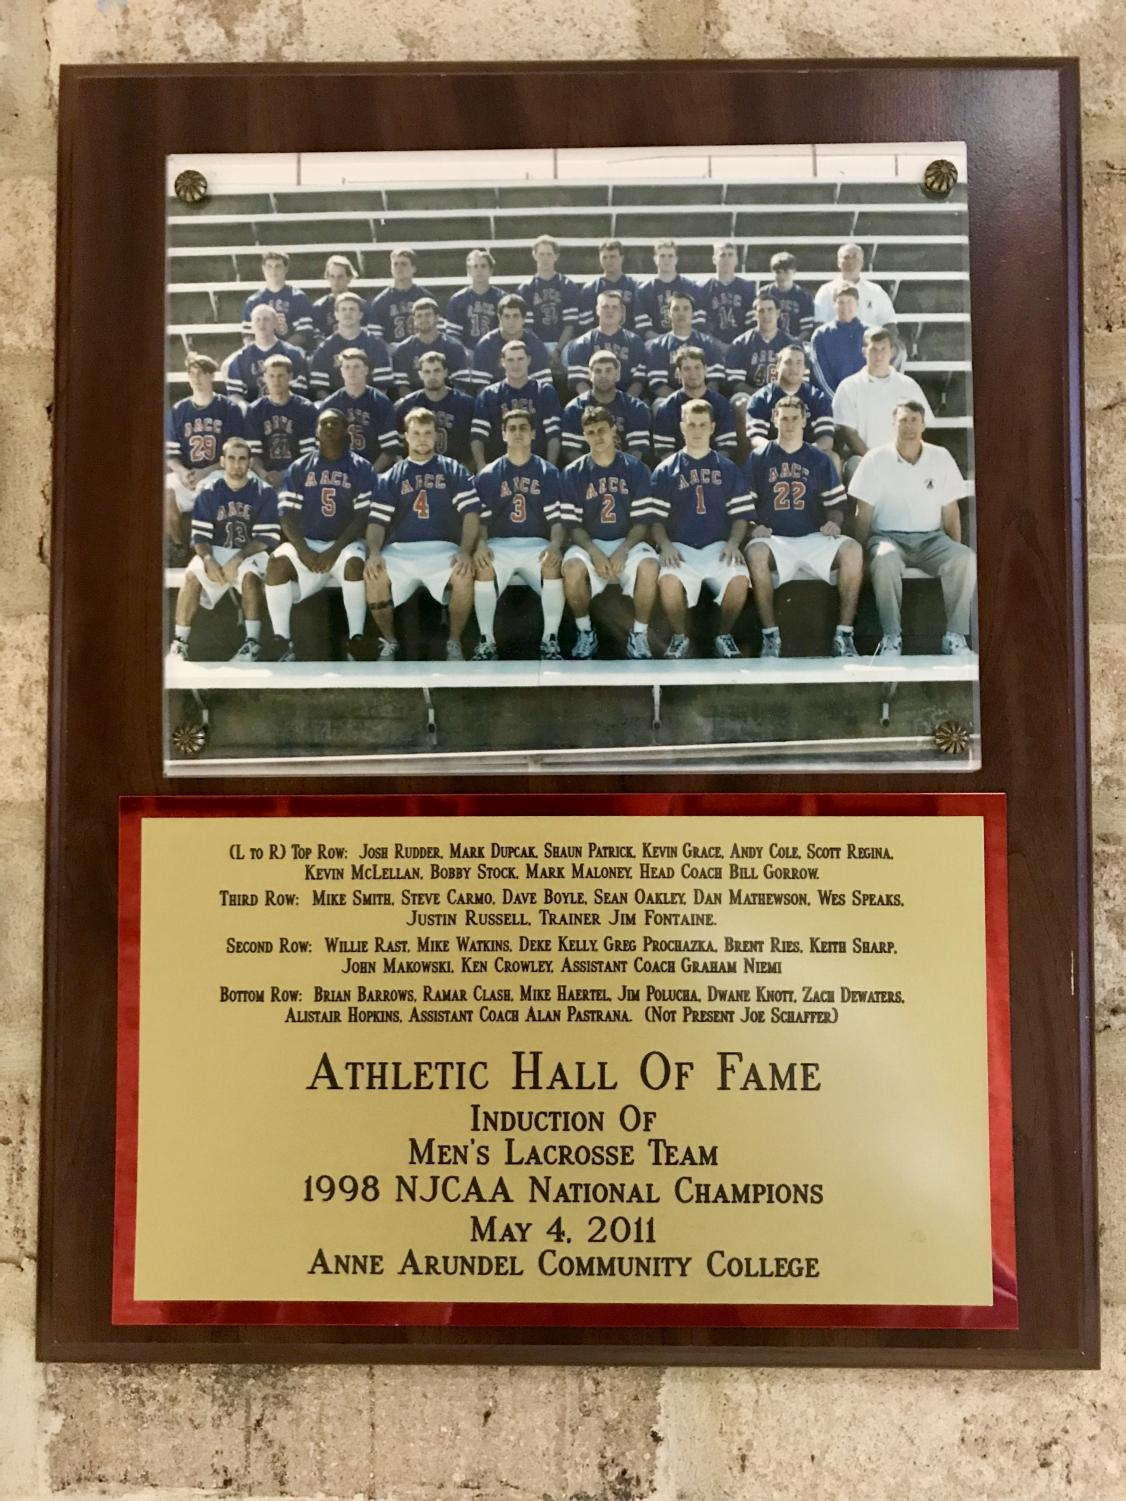 The team plaque hangs  in the AACC Hall of Fame in the gym.